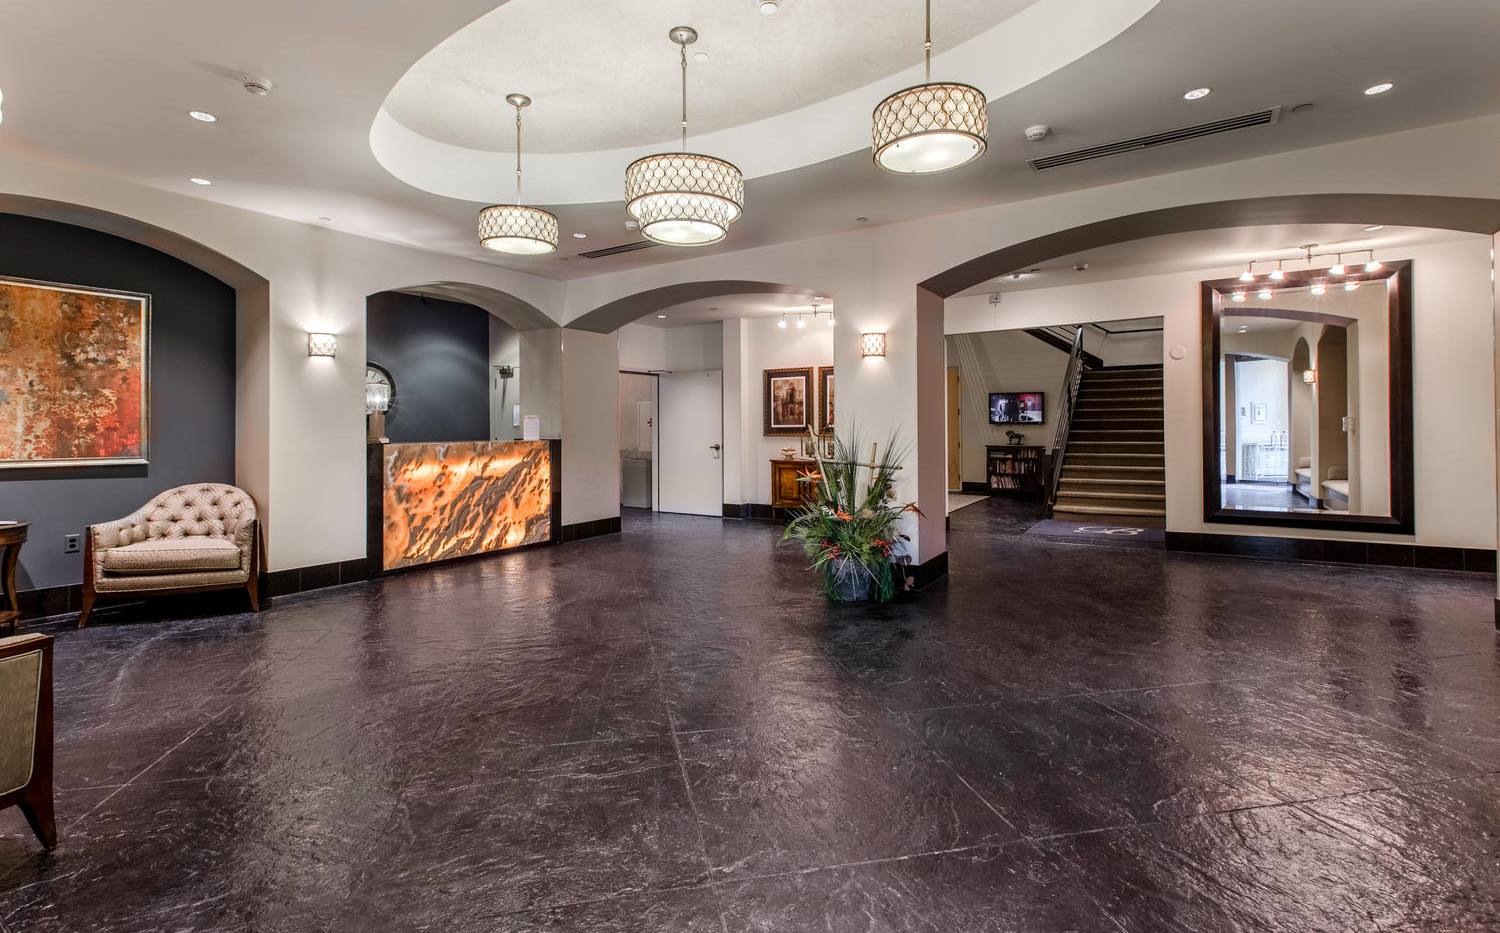 925 Lincoln Street-large-003-015-Lobby-1